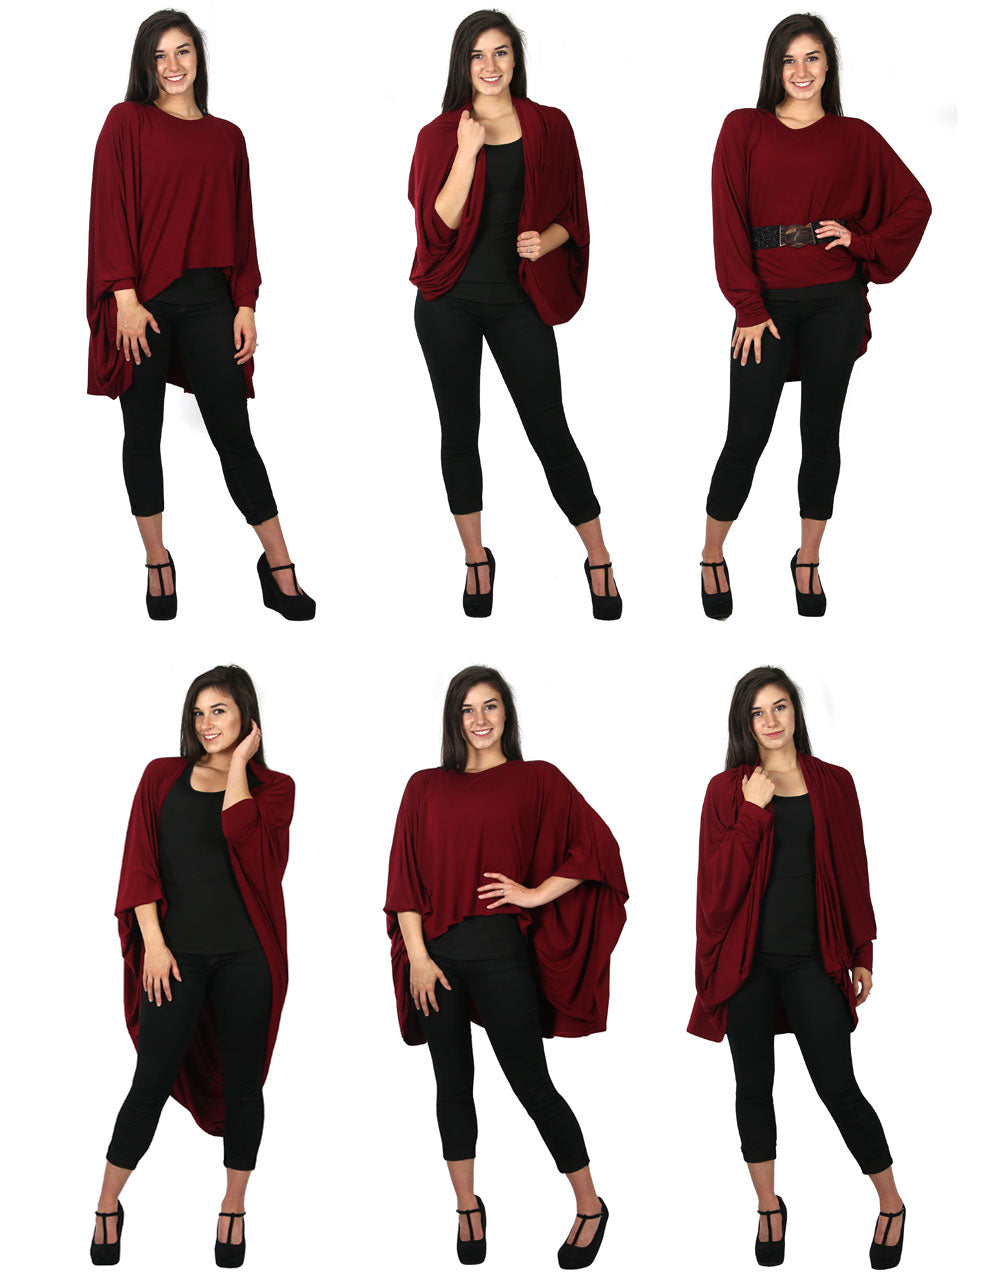 Tunic (wear it 6+ ways)